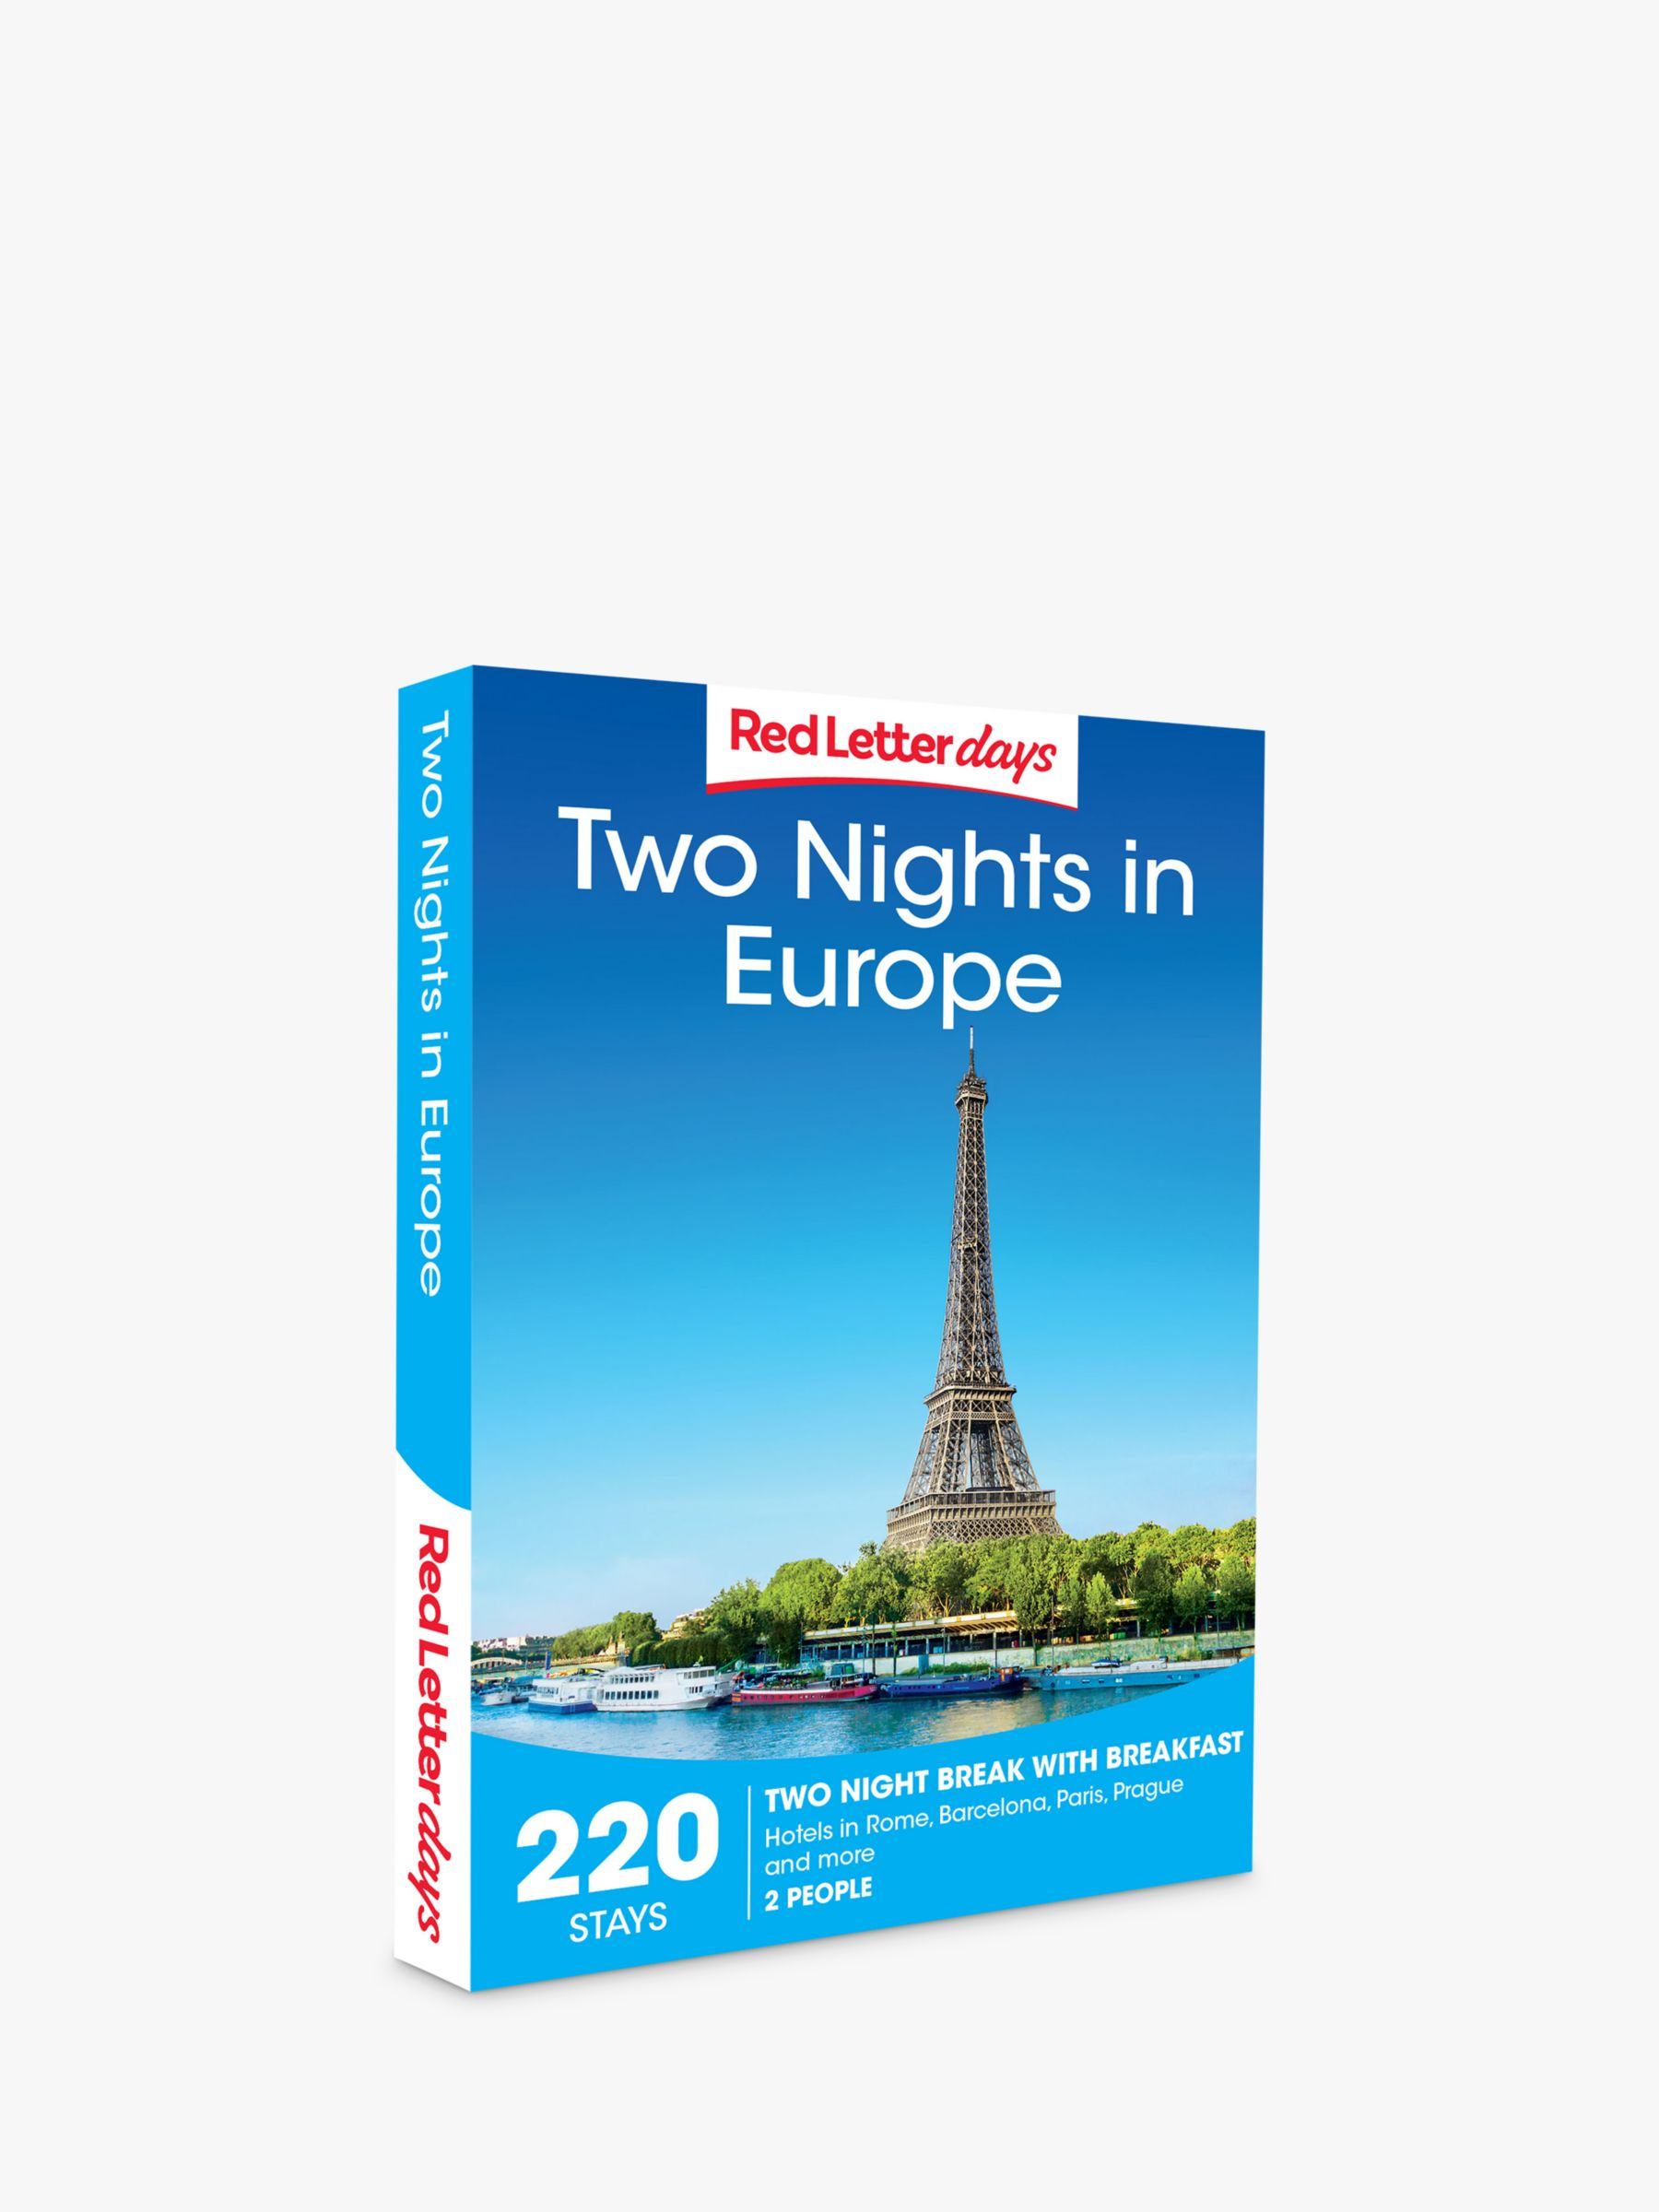 Red Letter Days Red Letter Days Two Nights in Europe Gift Experience